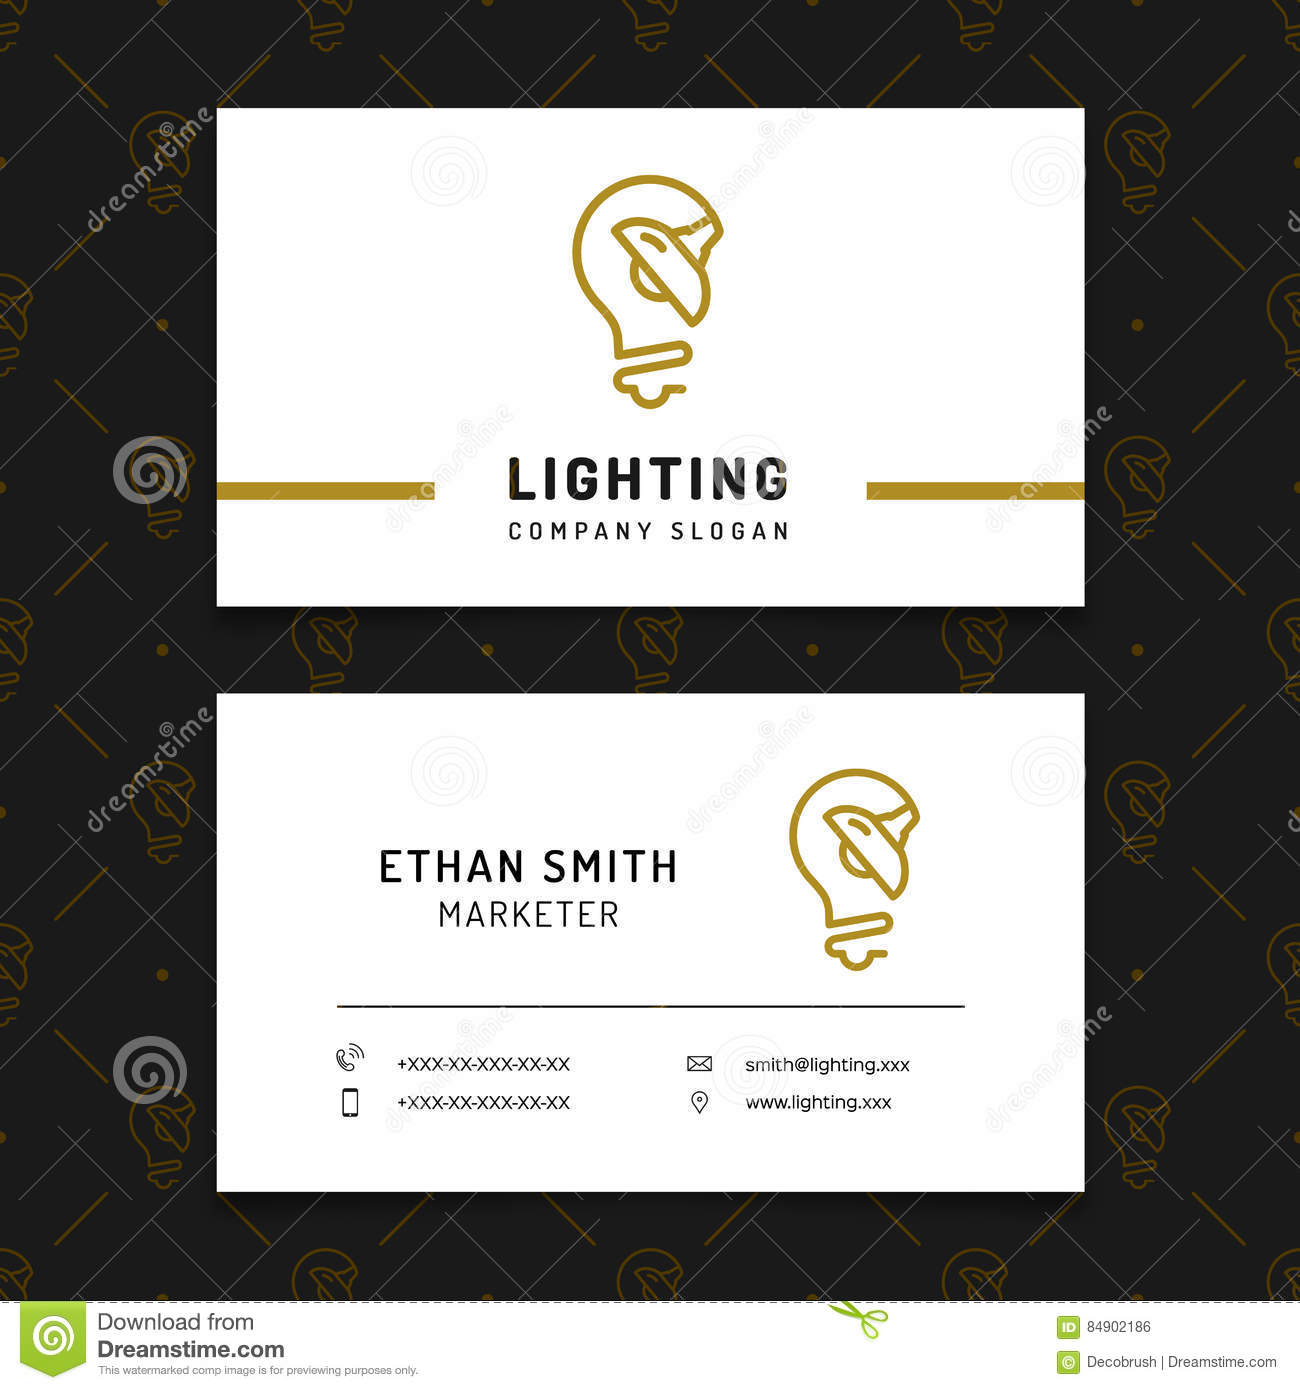 Lighting Business Card Template Lamp Shop Layout